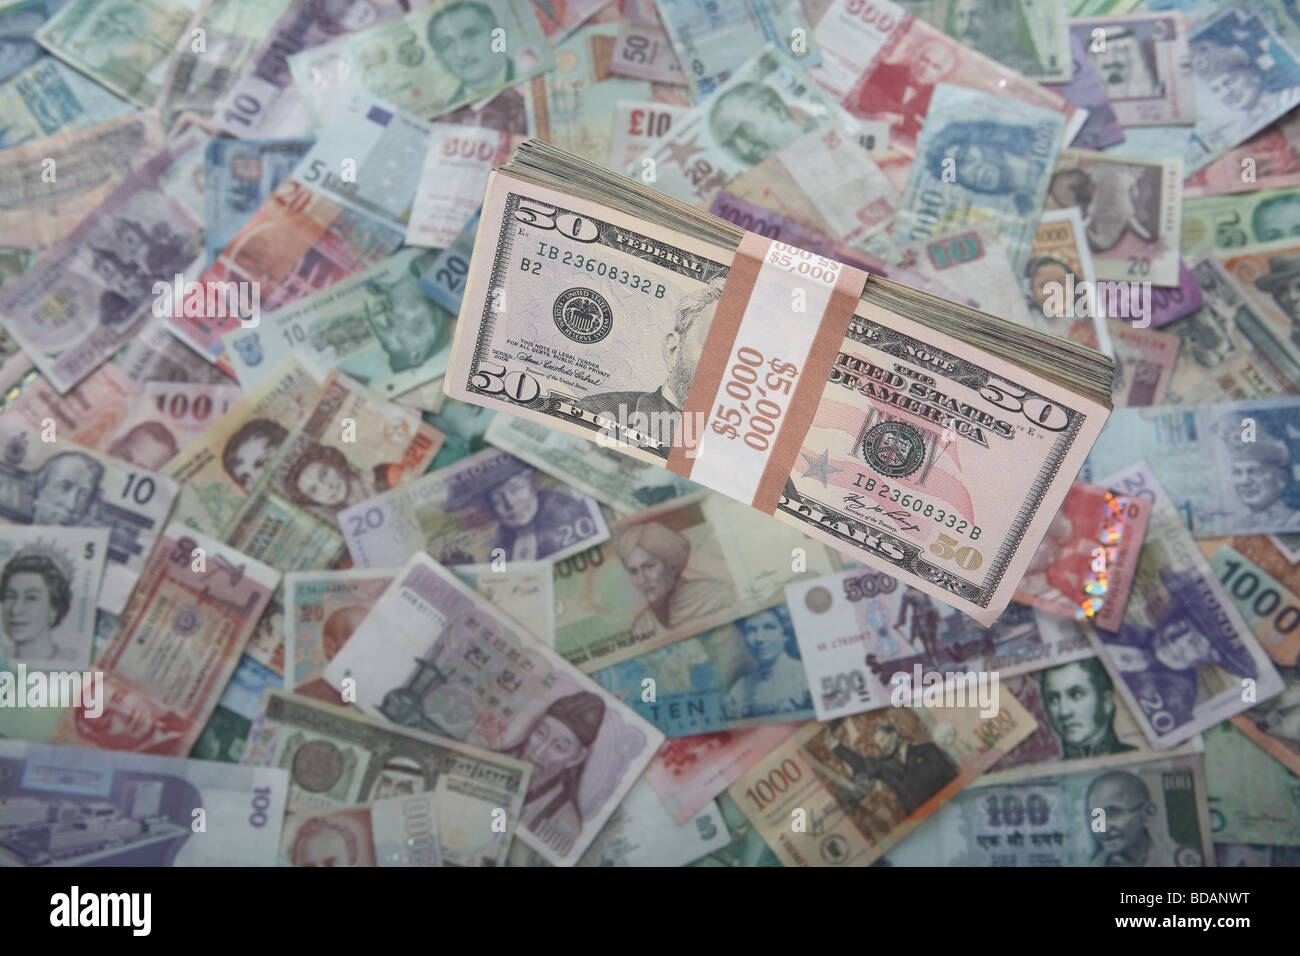 A bundled stack of fifty dollar bills on a soft background of international currencies - Stock Image